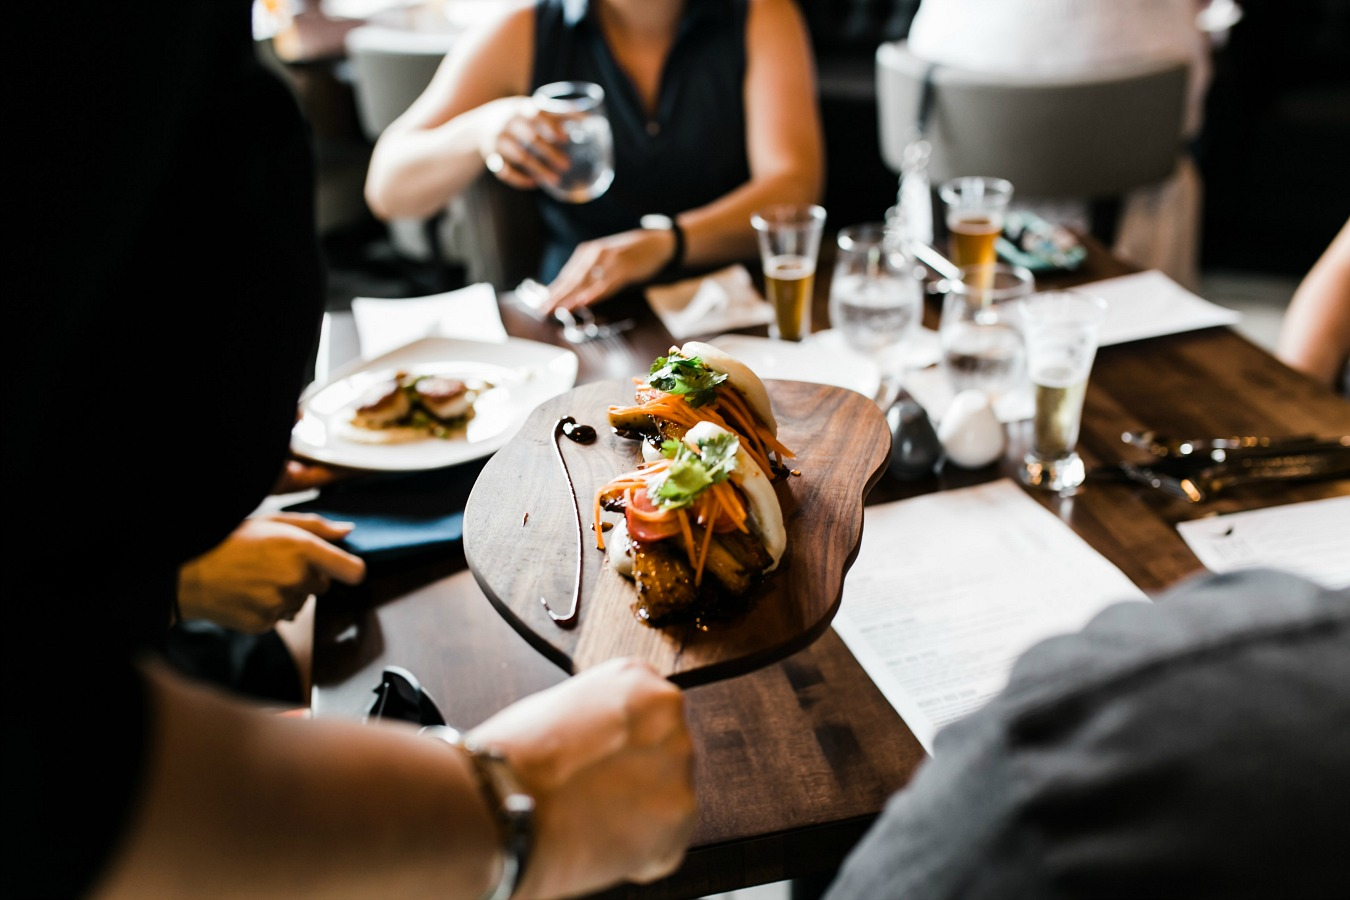 Documentary Restaurant and Food Photography